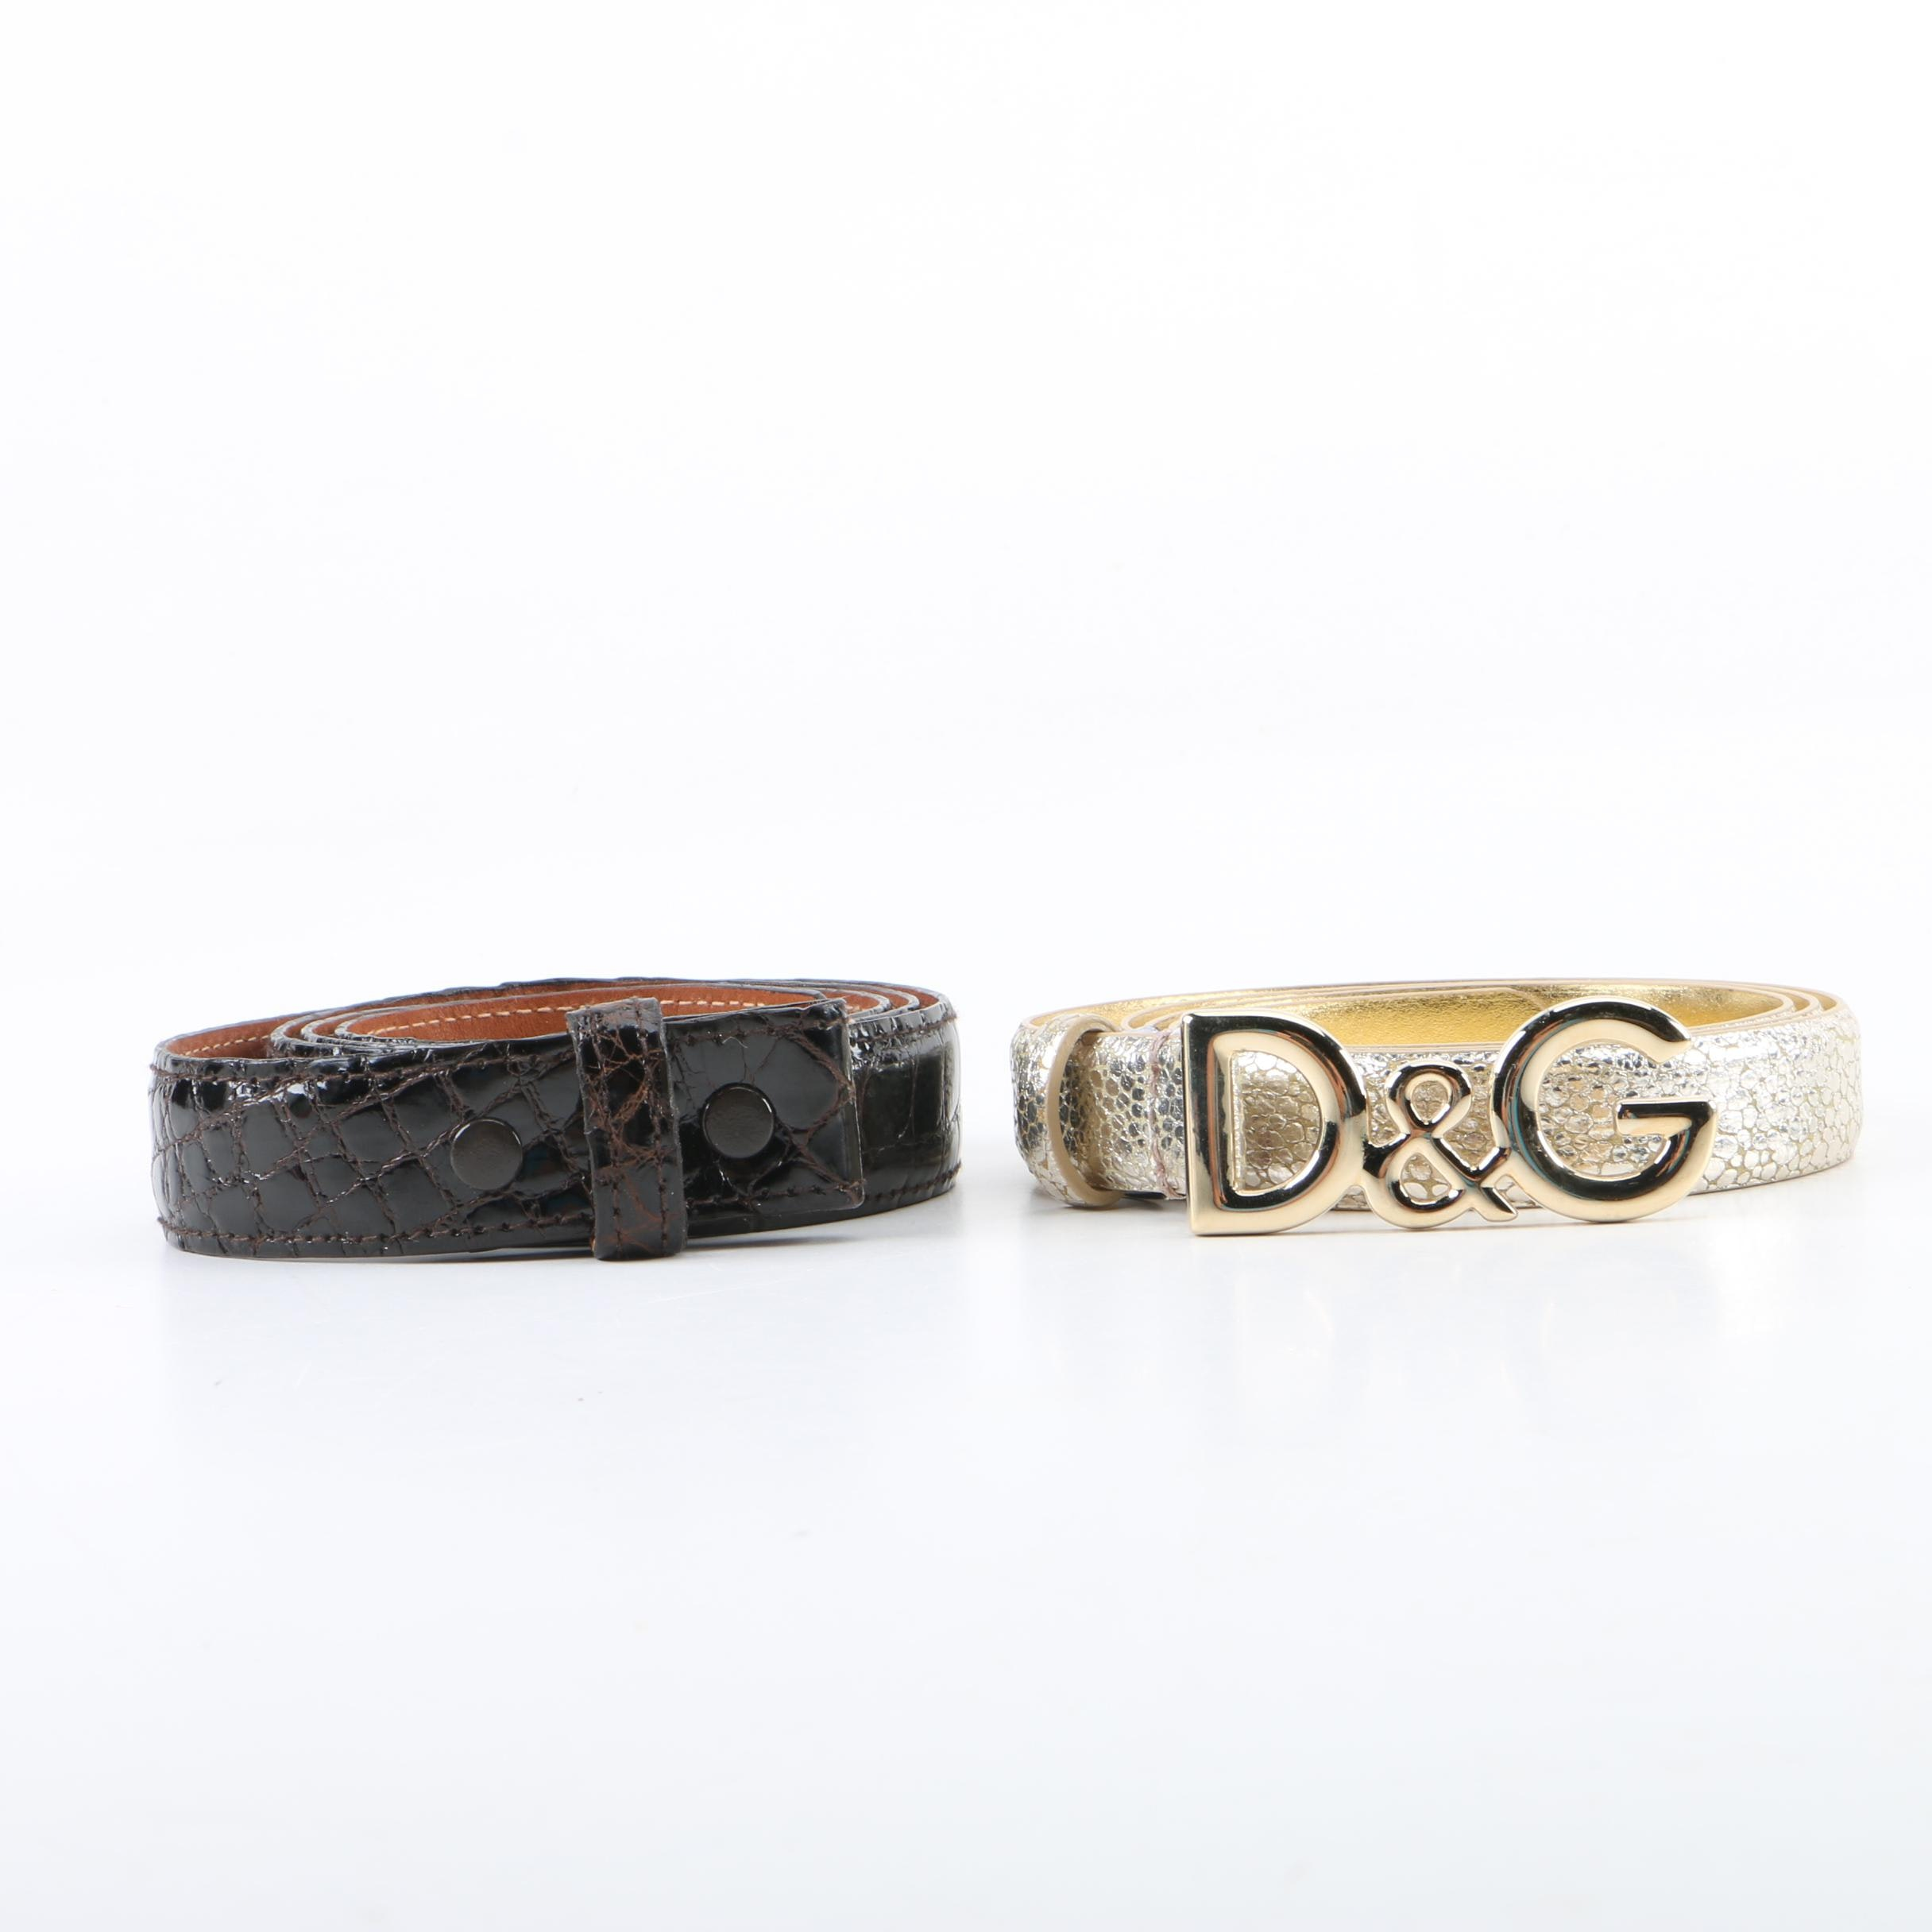 Dolce & Gabbana Metallic and Brooks Brothers Alligator Belts